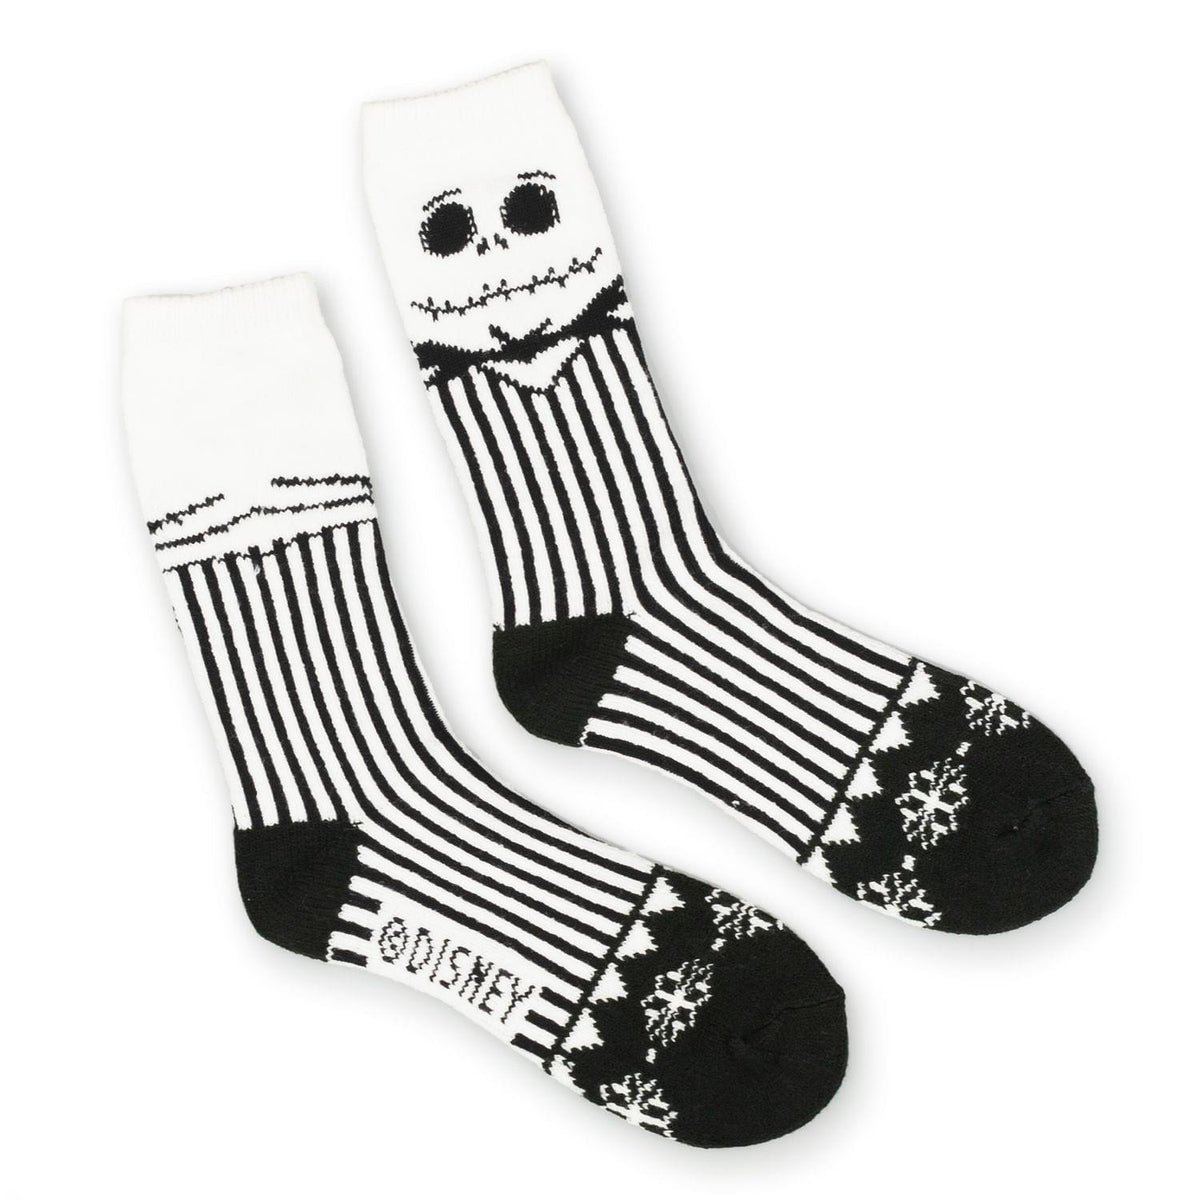 The Nightmare Before Christmas Ugly Sweater Socks | Toynk Toys